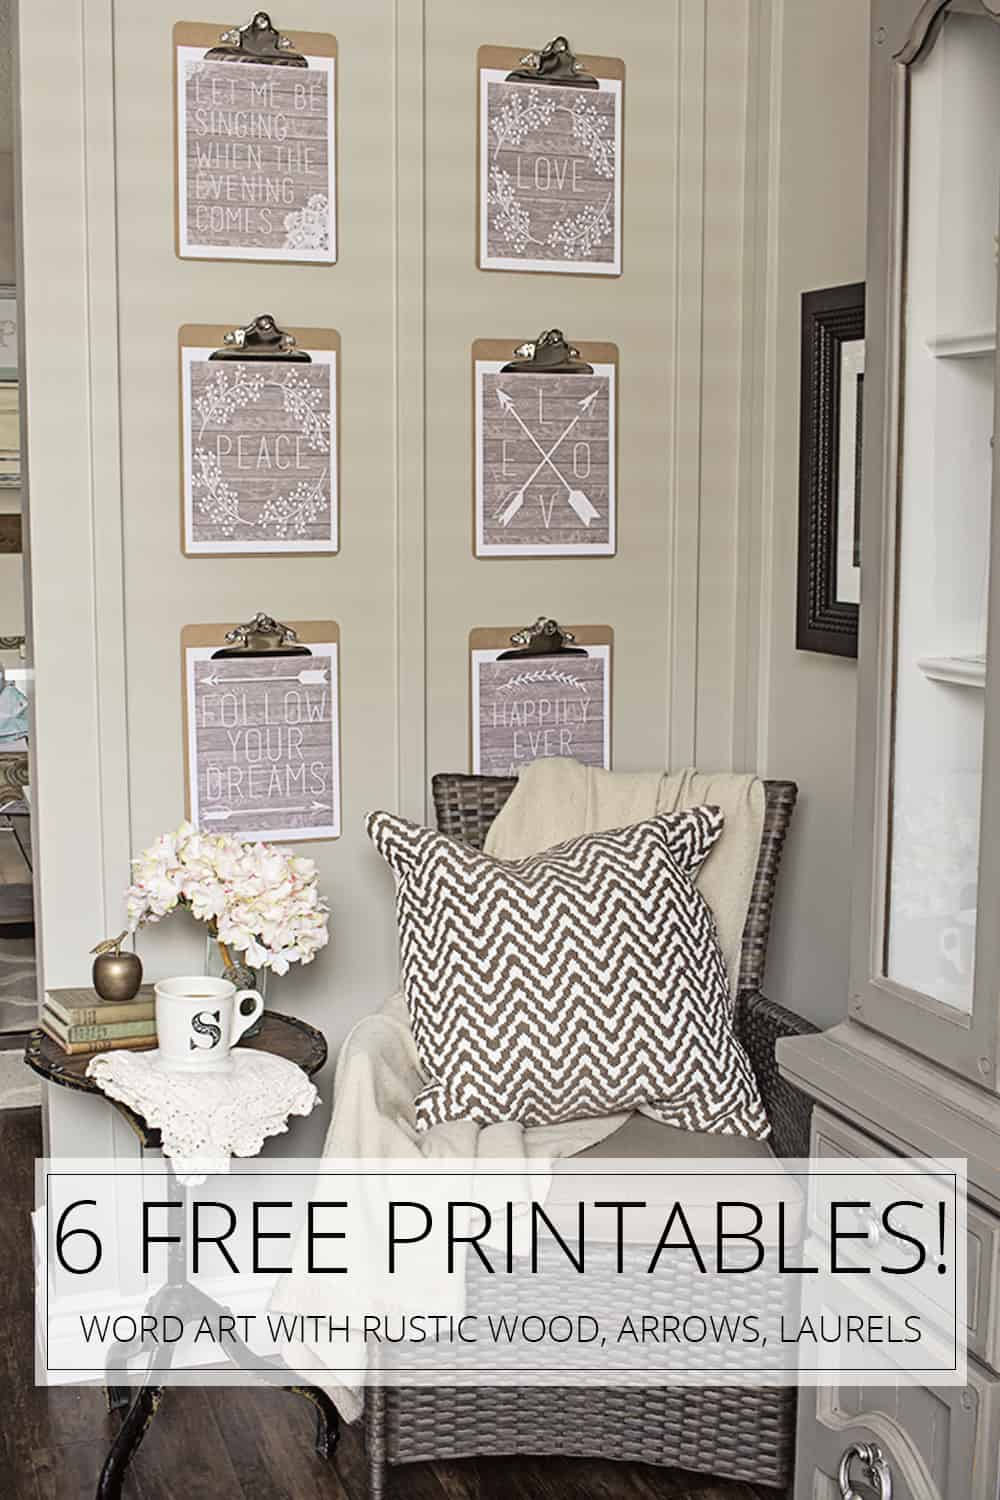 graphic about Printable Word Art titled 6 Cost-free Farmhouse Printable Artwork Parts Term Artwork with Rustic